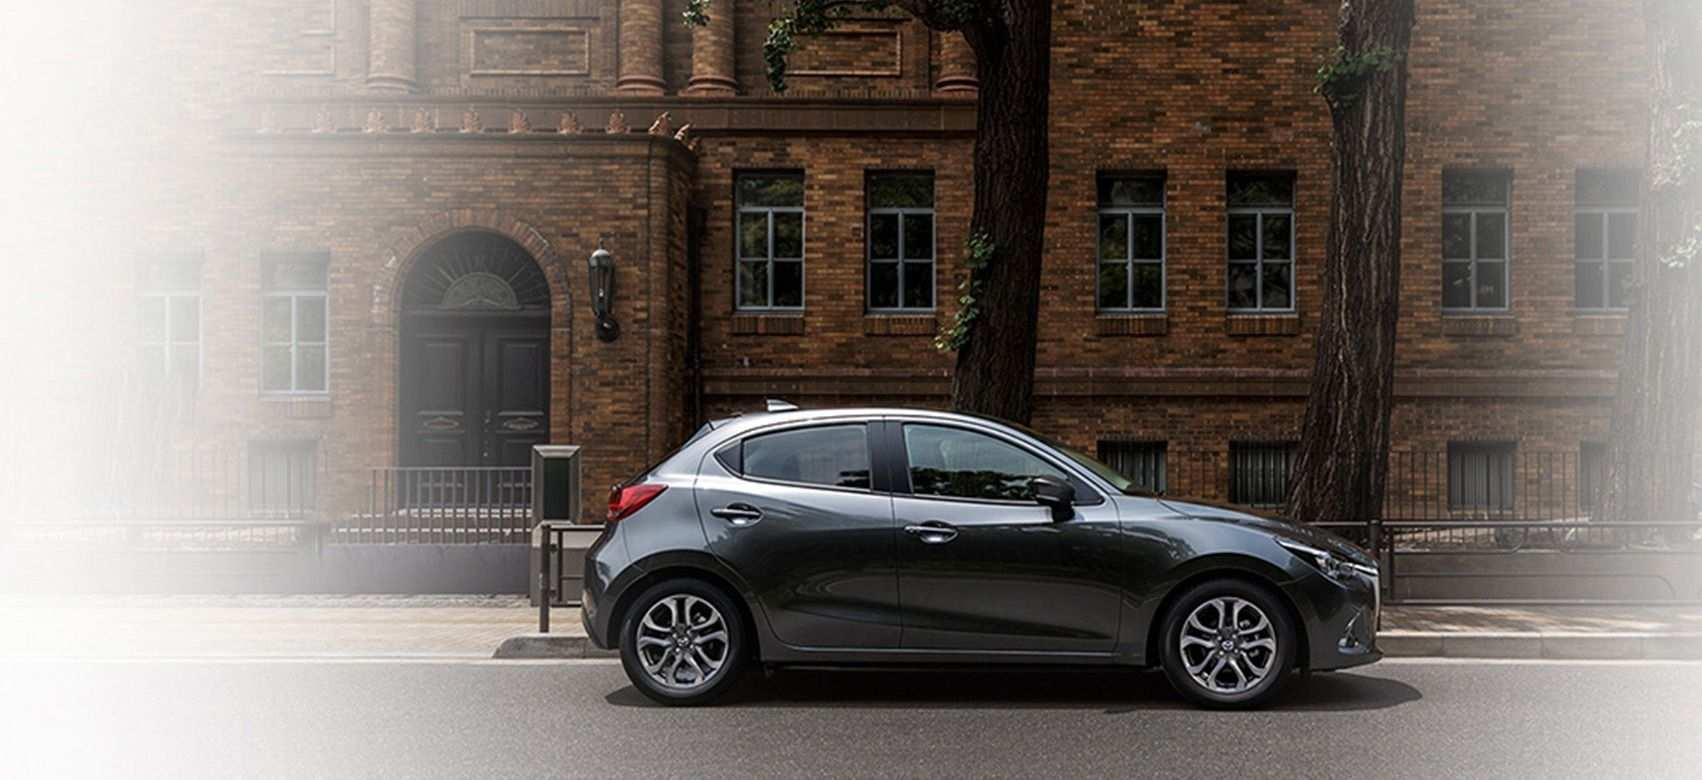 69 New The Mazda 2 2019 Lebanon Specs And Review Redesign